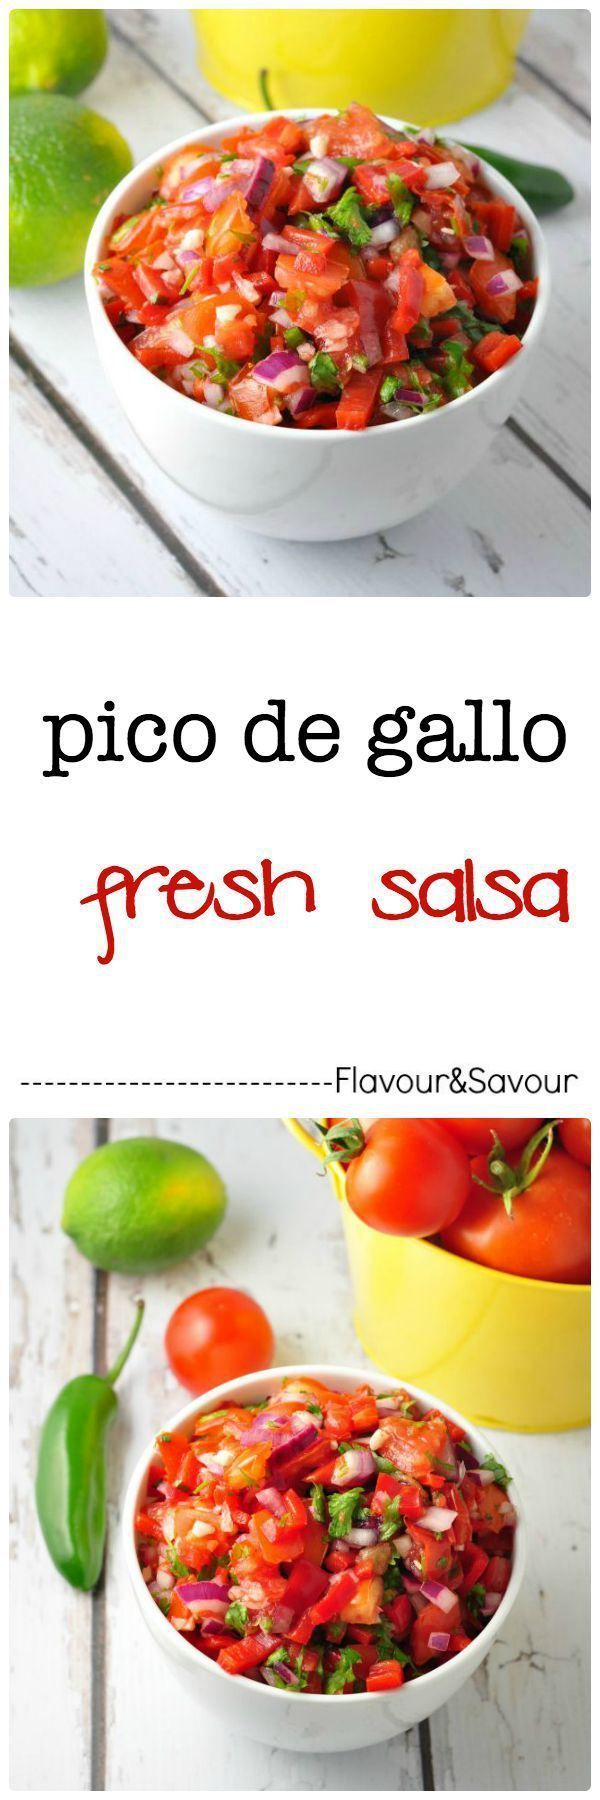 Pico de Gallo. Fresh Salsa made with tomatoes, peppers, onions, garlic and jalapenos. Never buy it again, as it's so easy to make at home. #fresh #salsa #easy